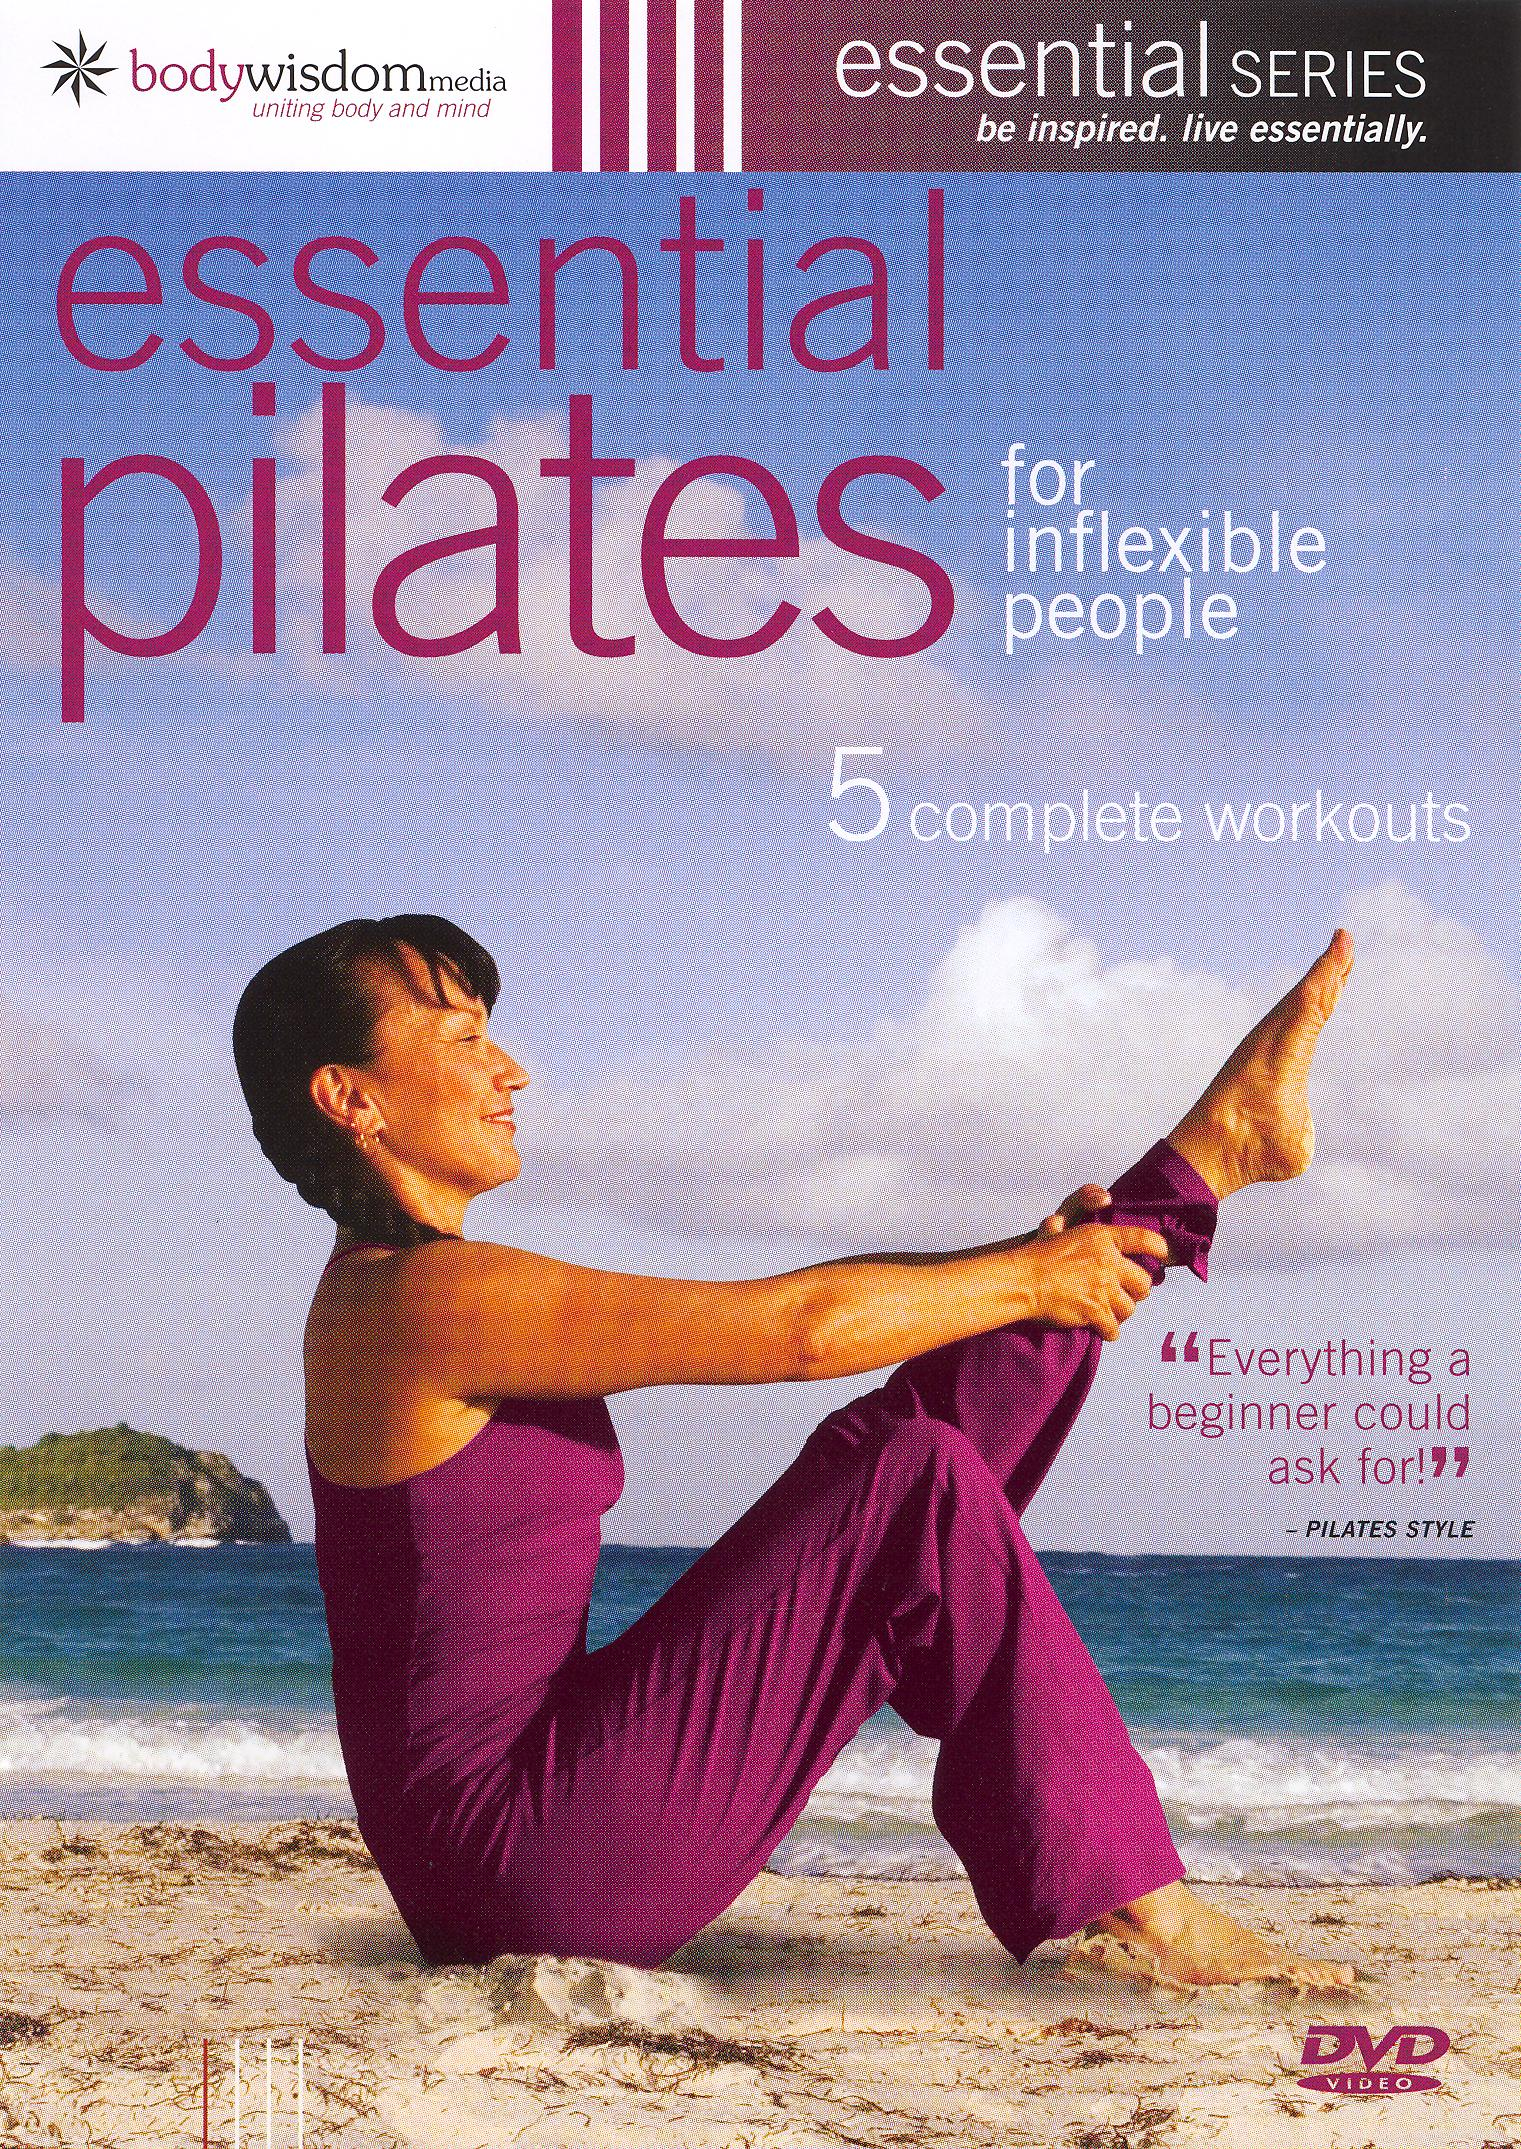 Essential Pilates for Inflexible People